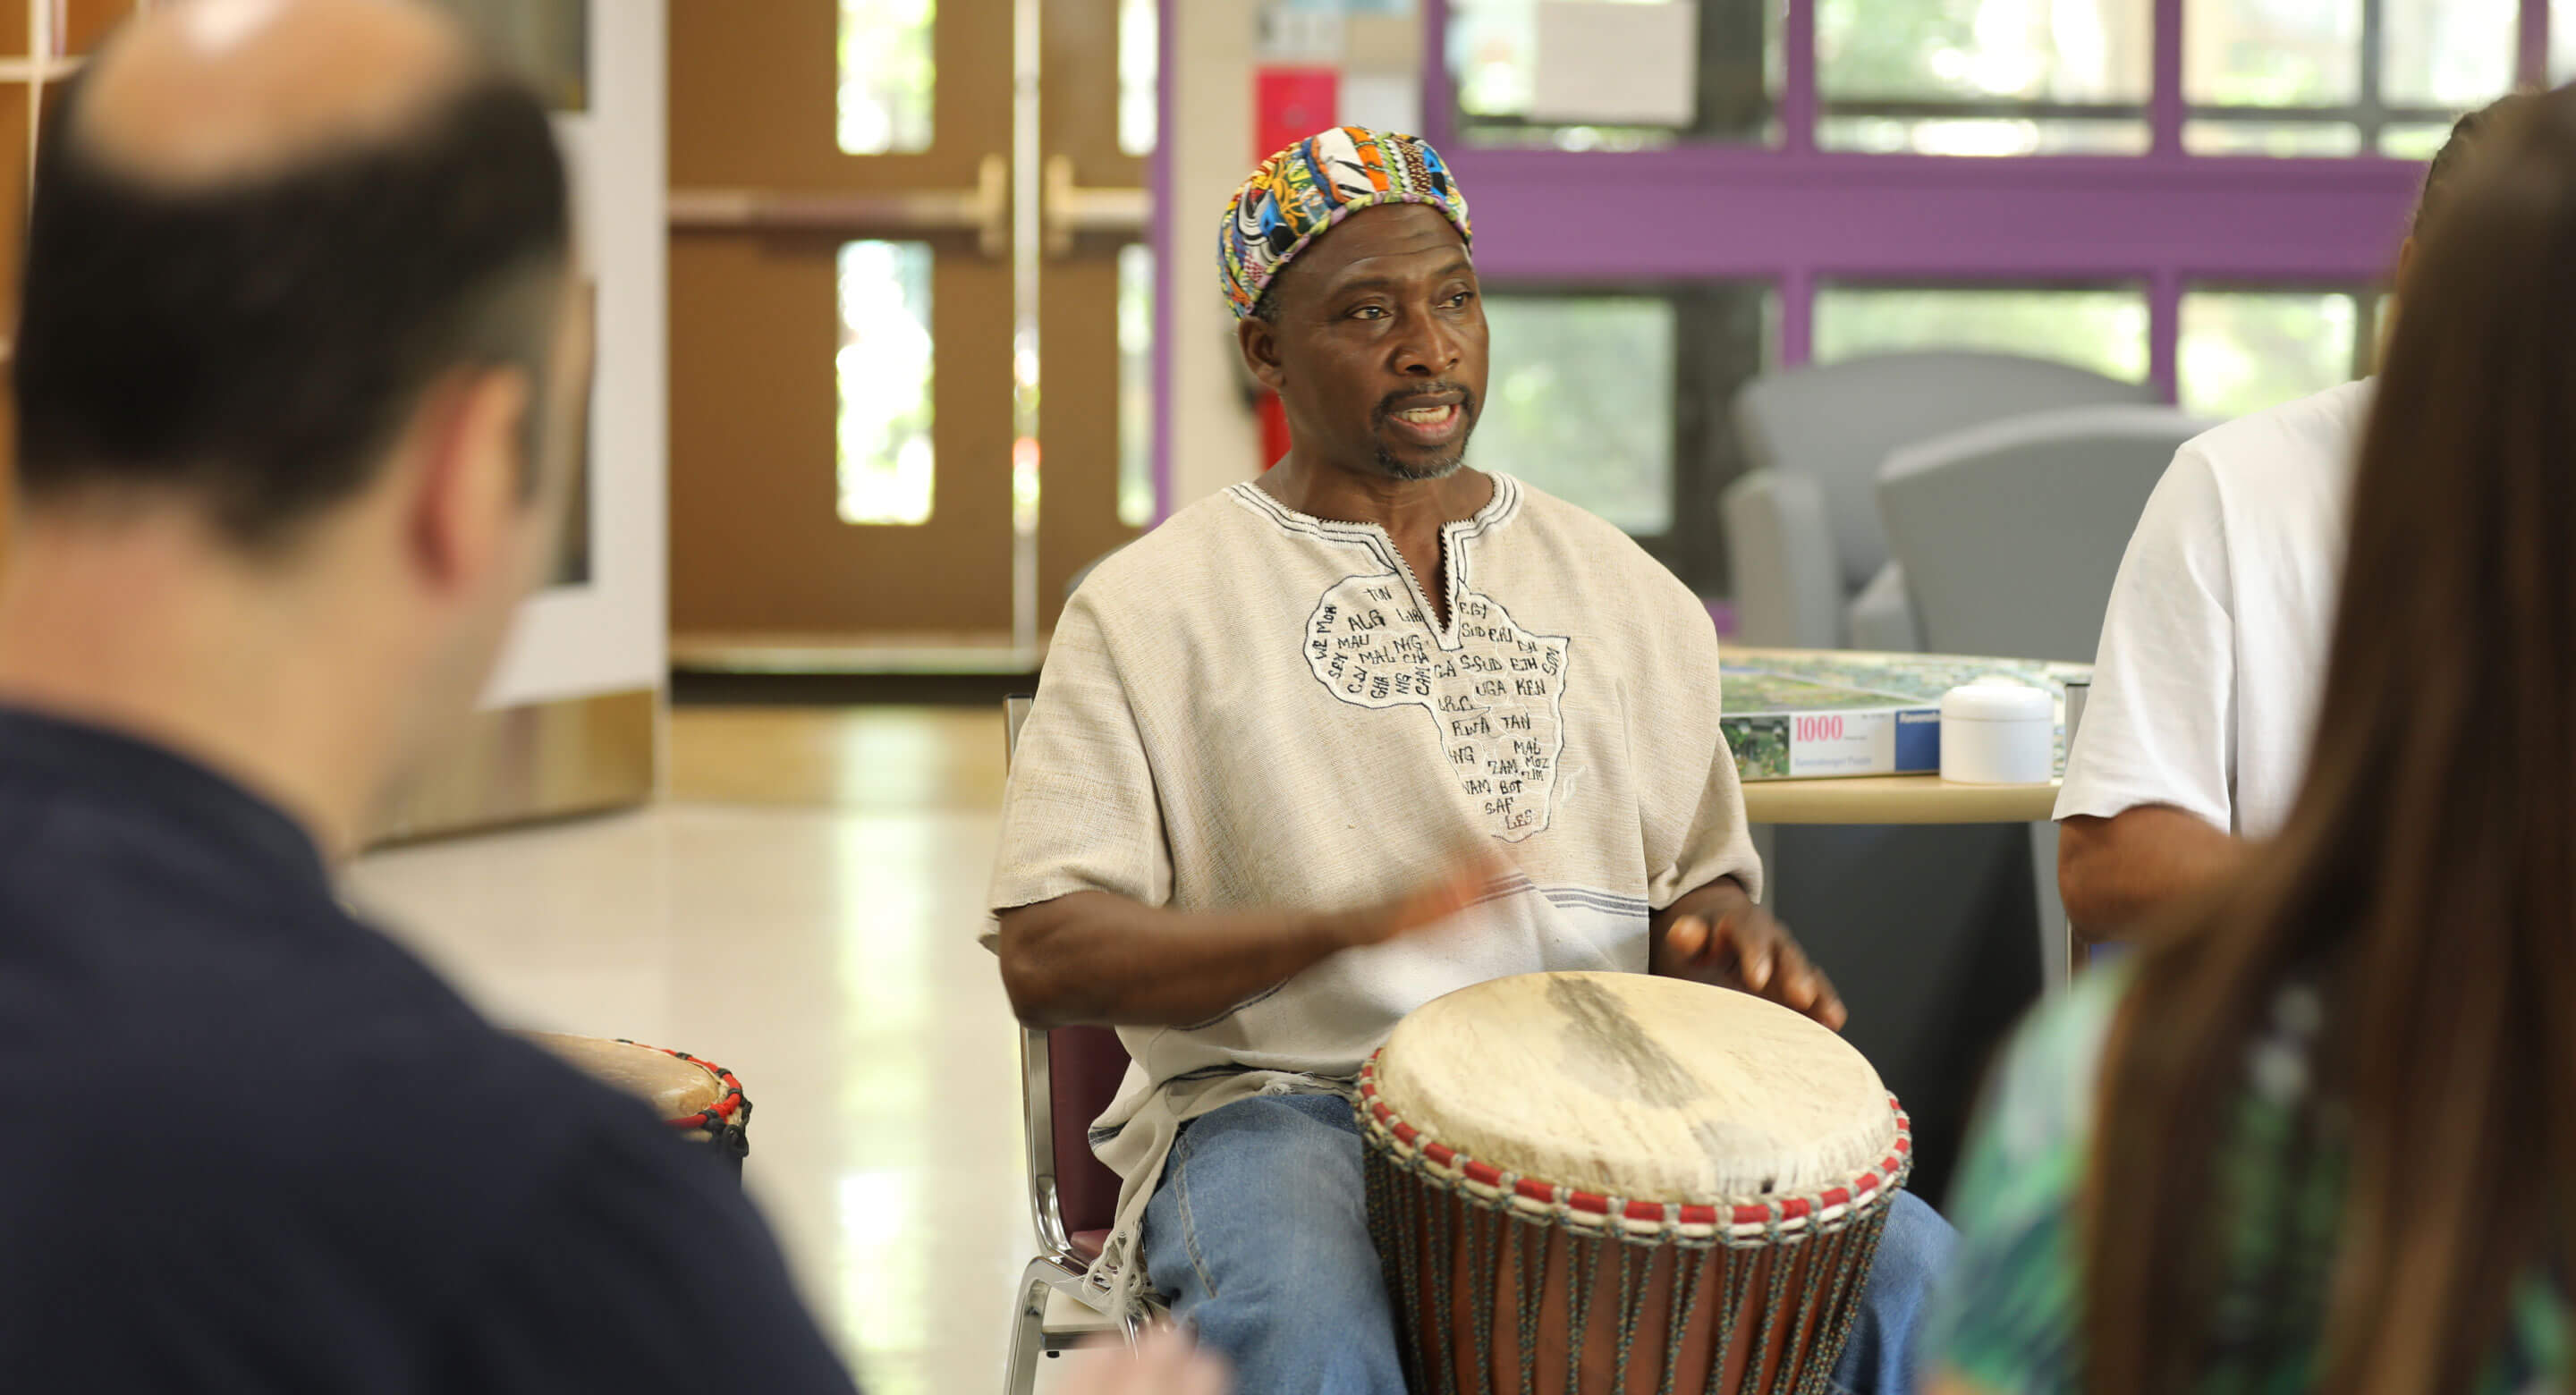 Djembe drumming session